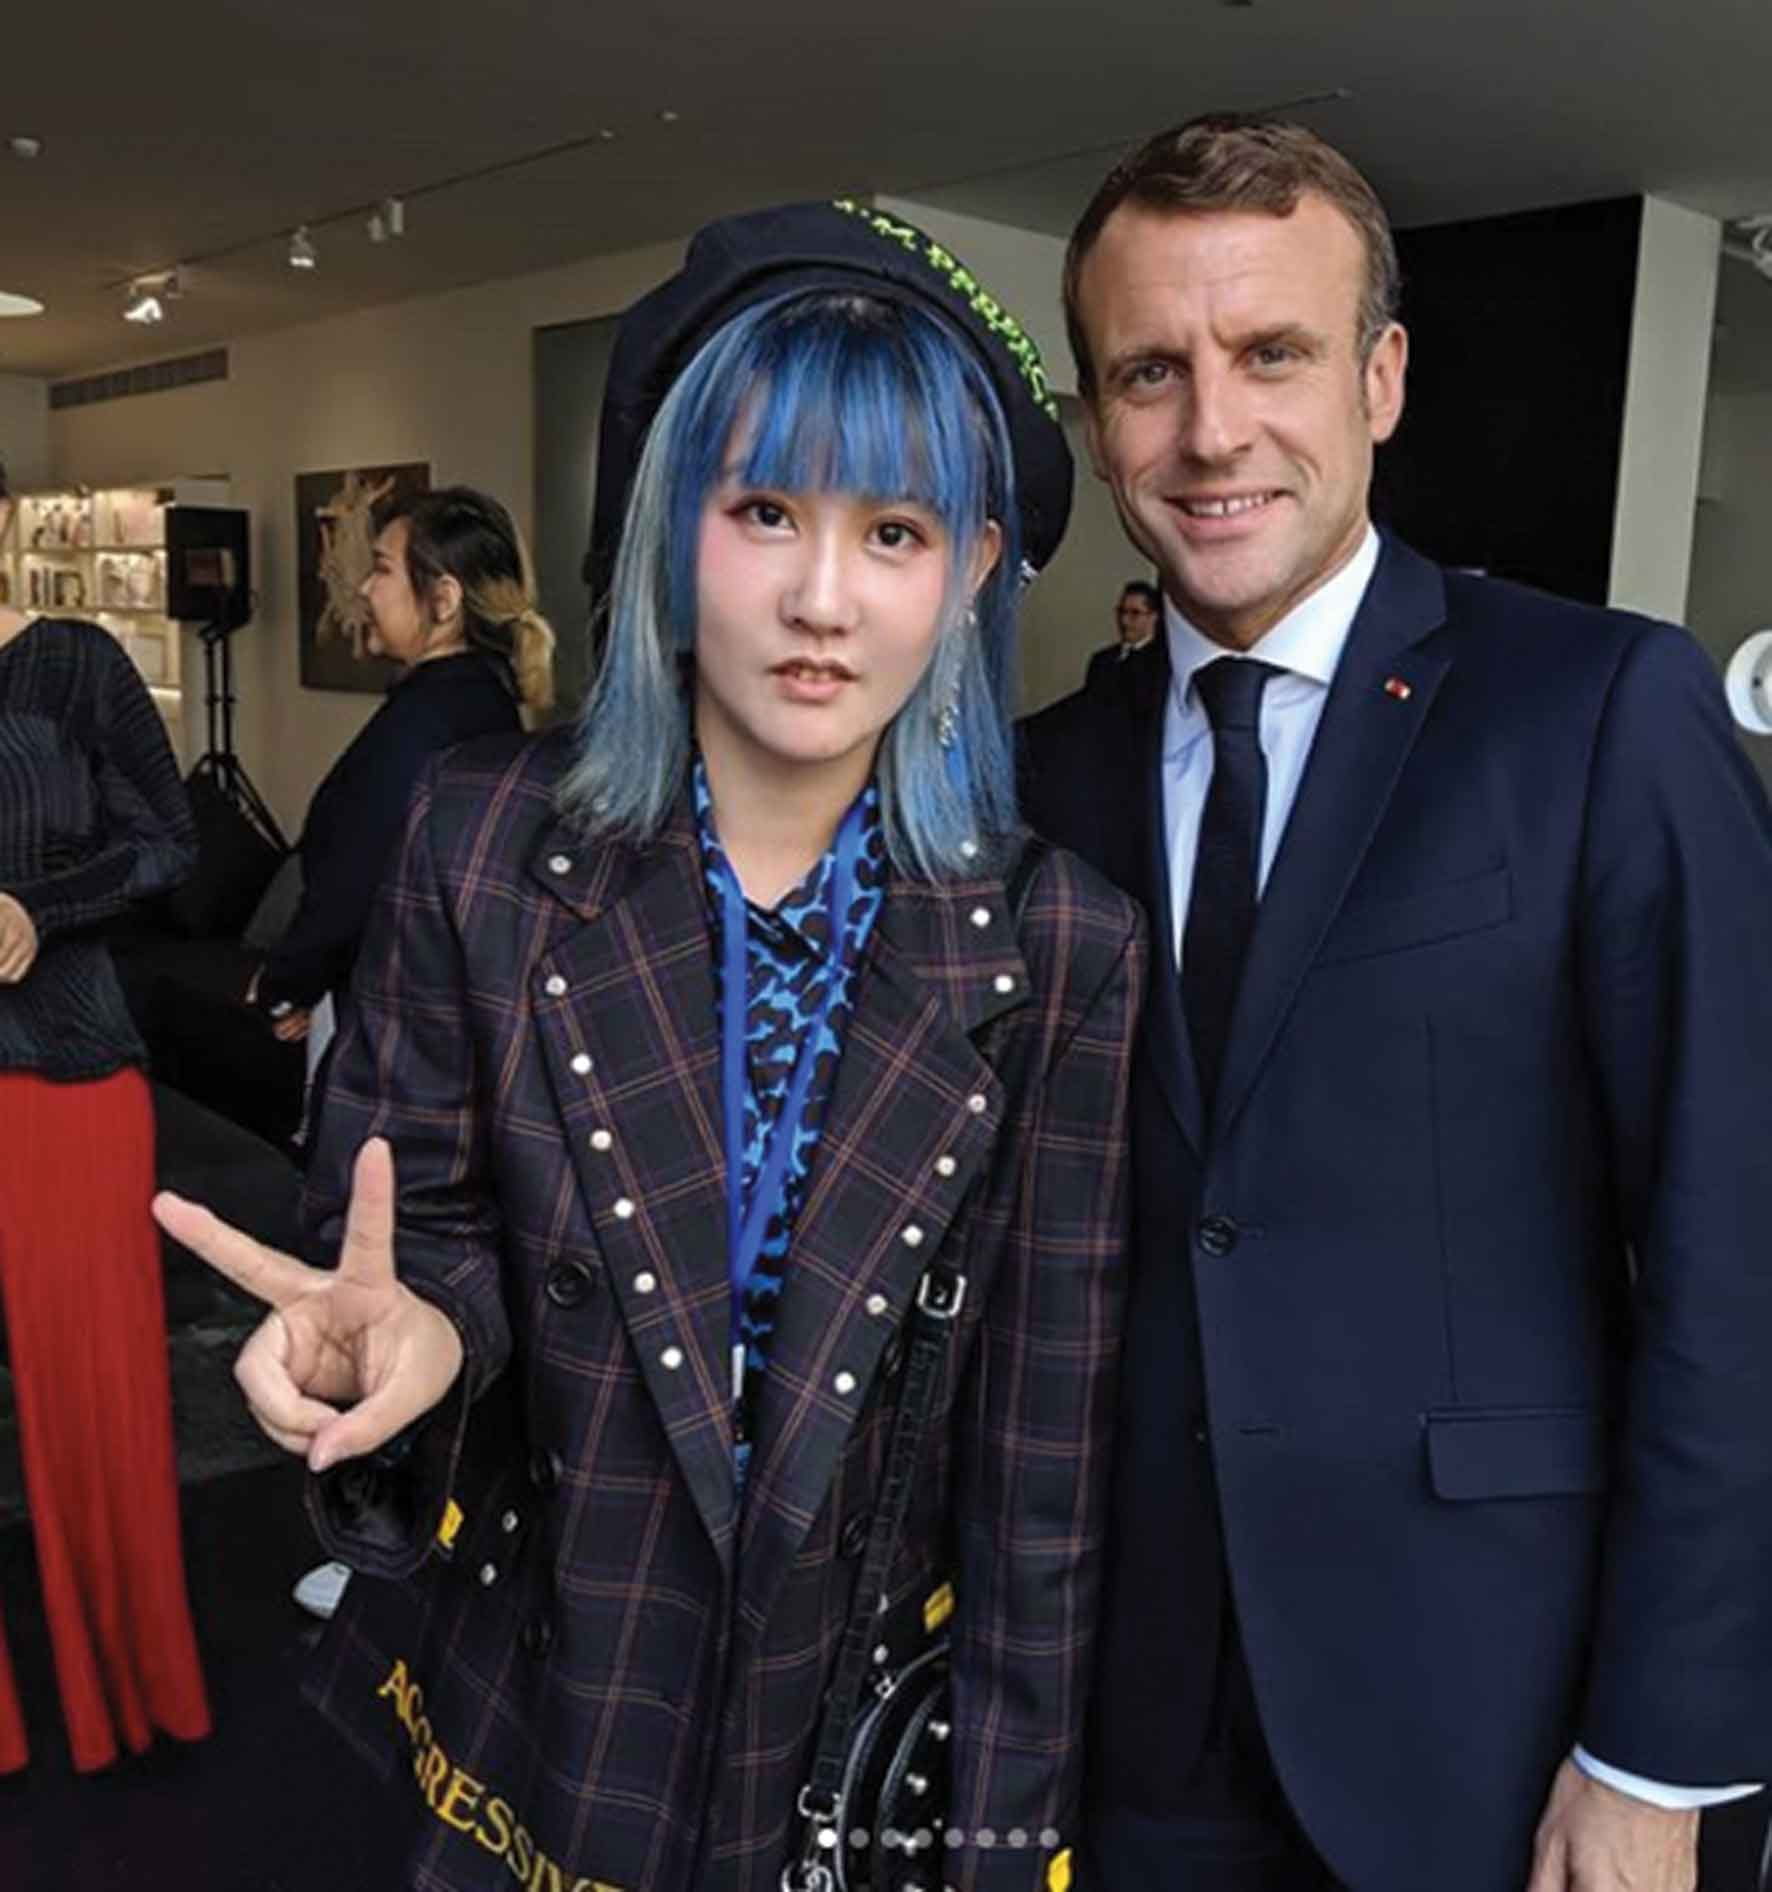 LuYang-with-Macron_Instagram